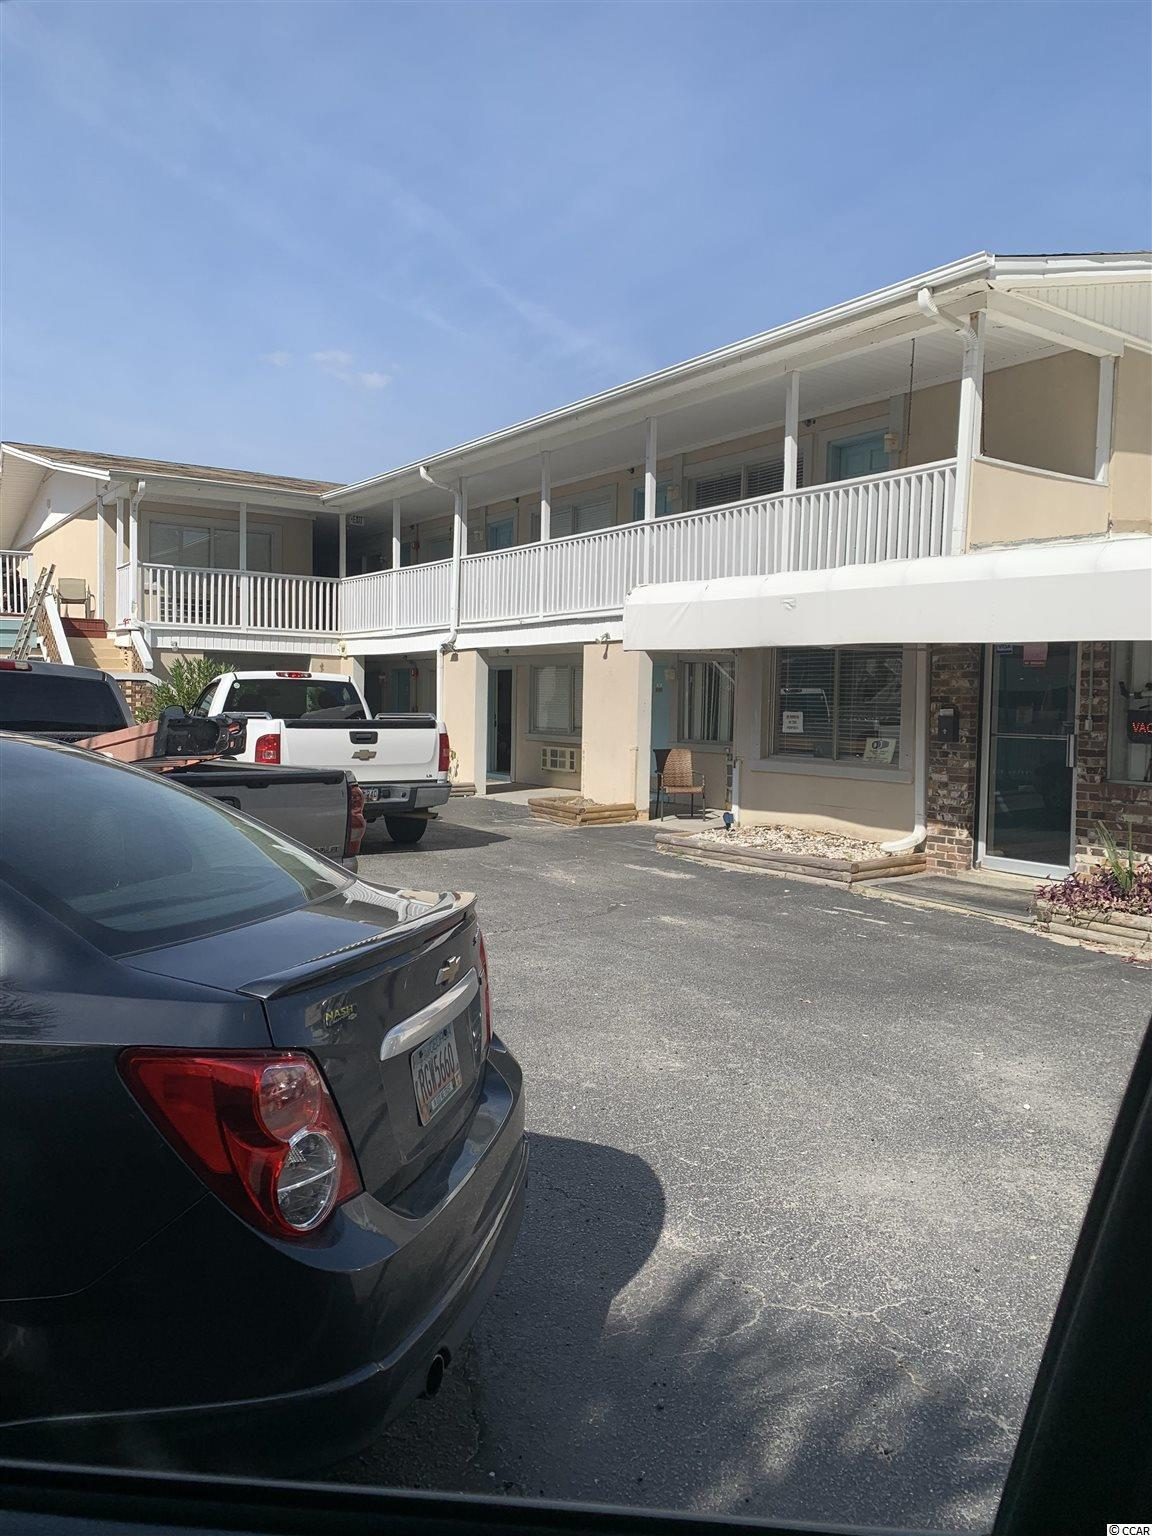 This beautiful 2 Bedroom condo is right across the street from the beach in highly sought after Cherry Grove, SC. This fully furnished condo is perfect for a vacation retreat or a money making investmate property. Come check out this awesome property.